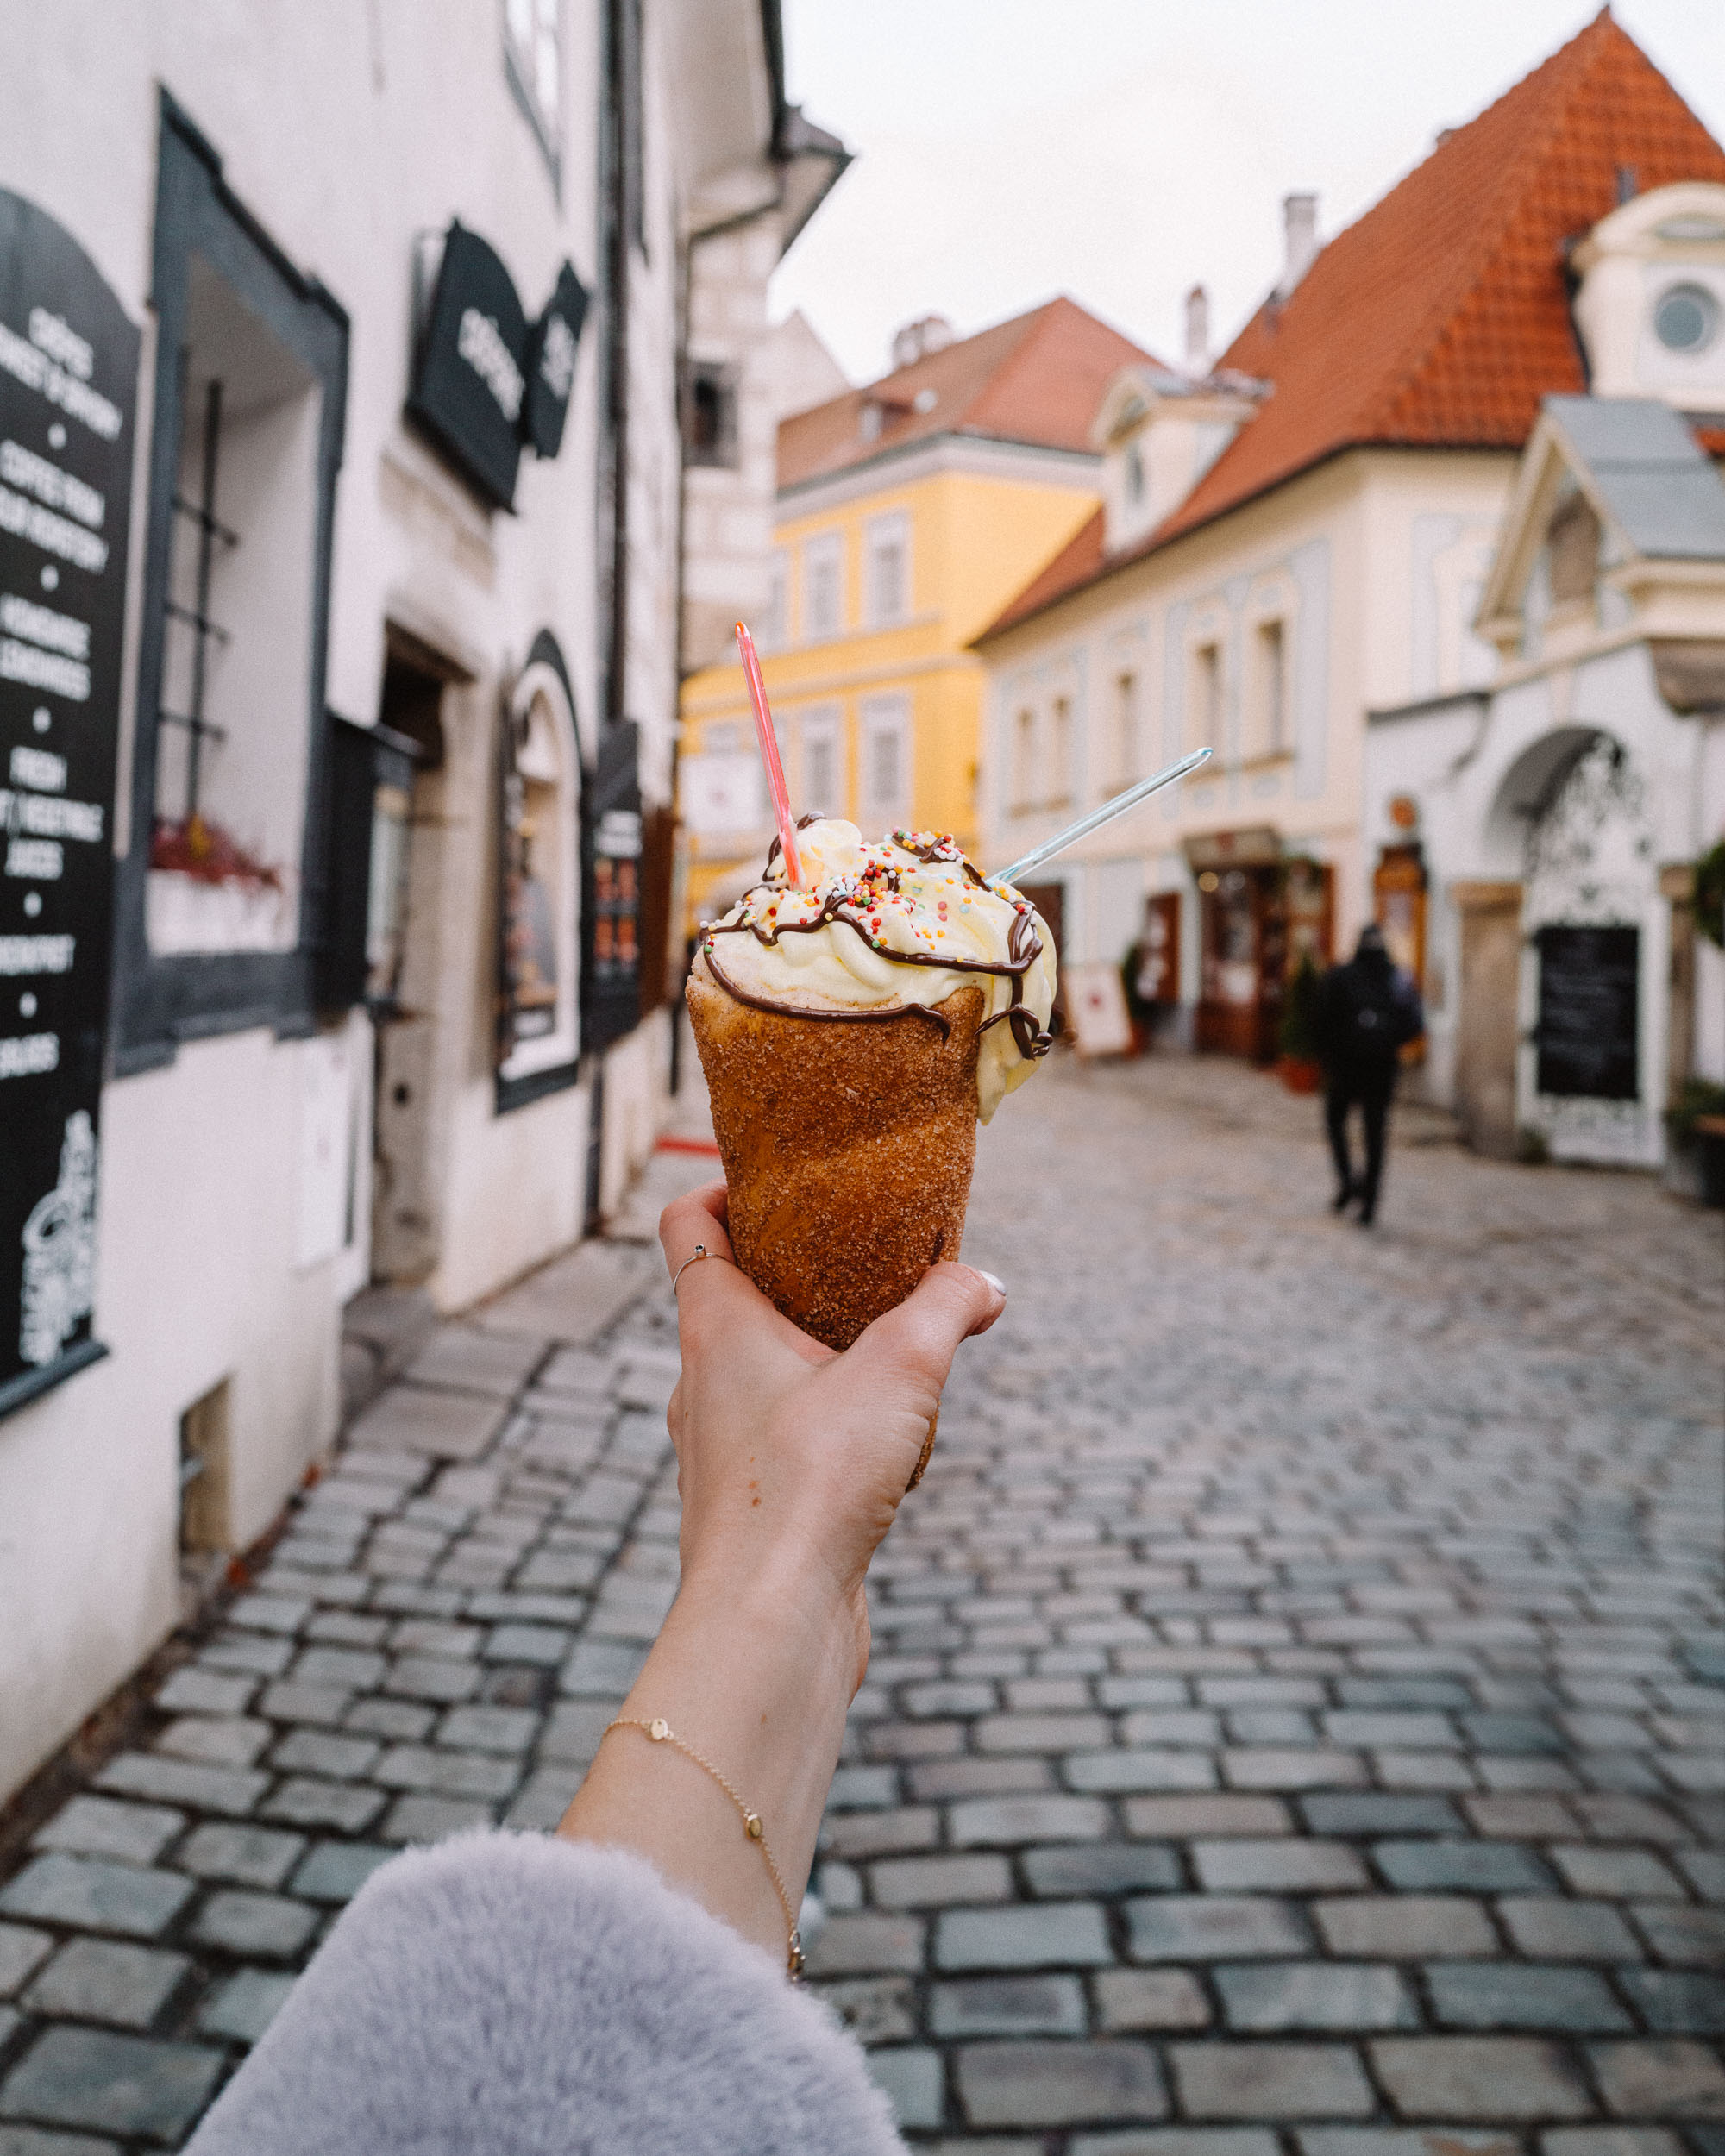 Woman's hand holding a chimney cake in Cesky, Krumlov.